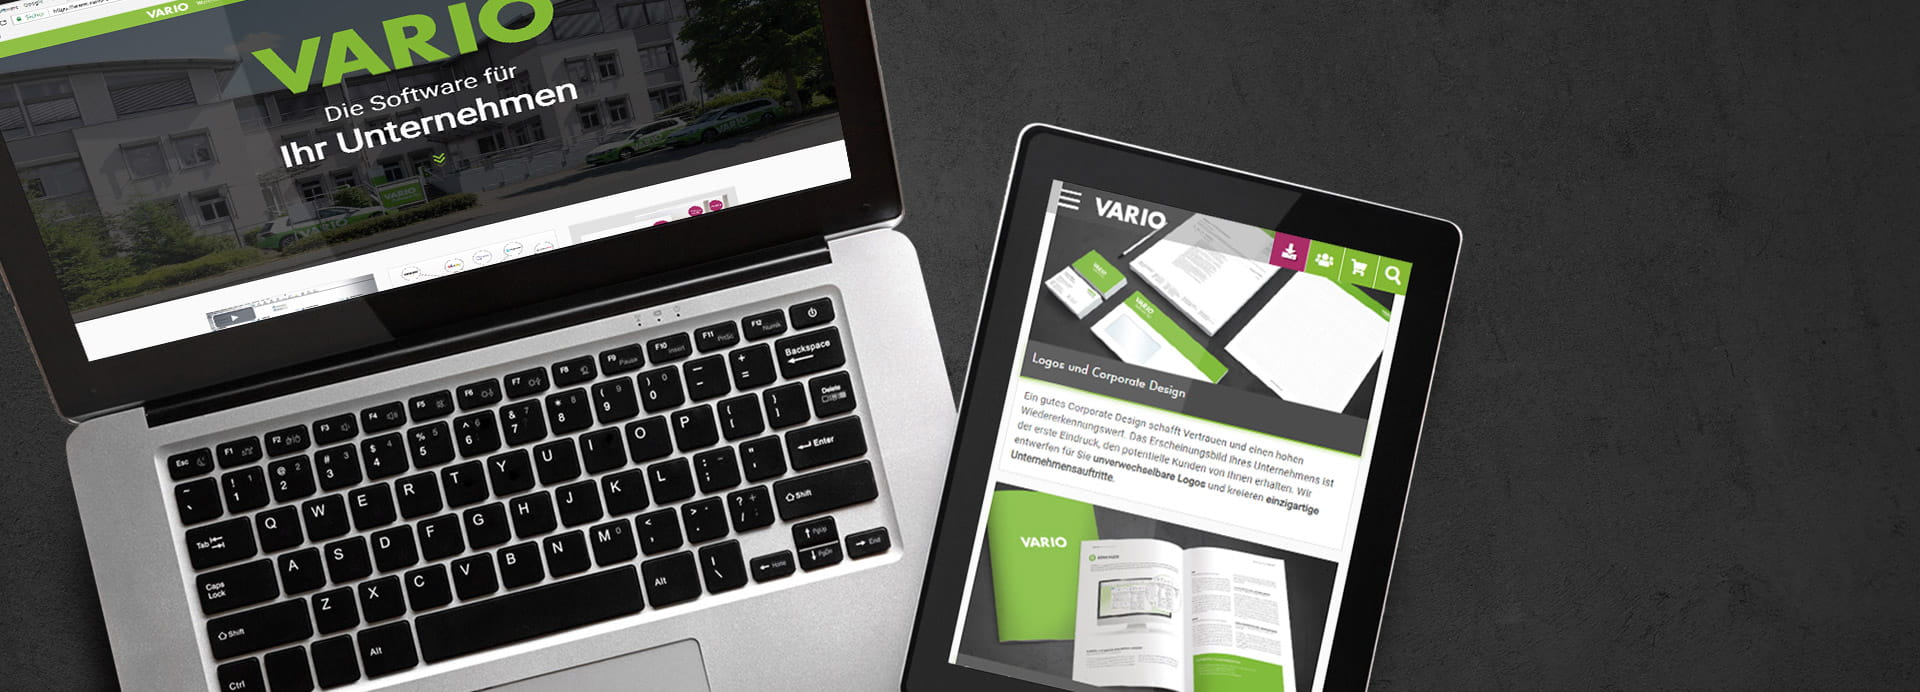 Neues Design der VARIO Website